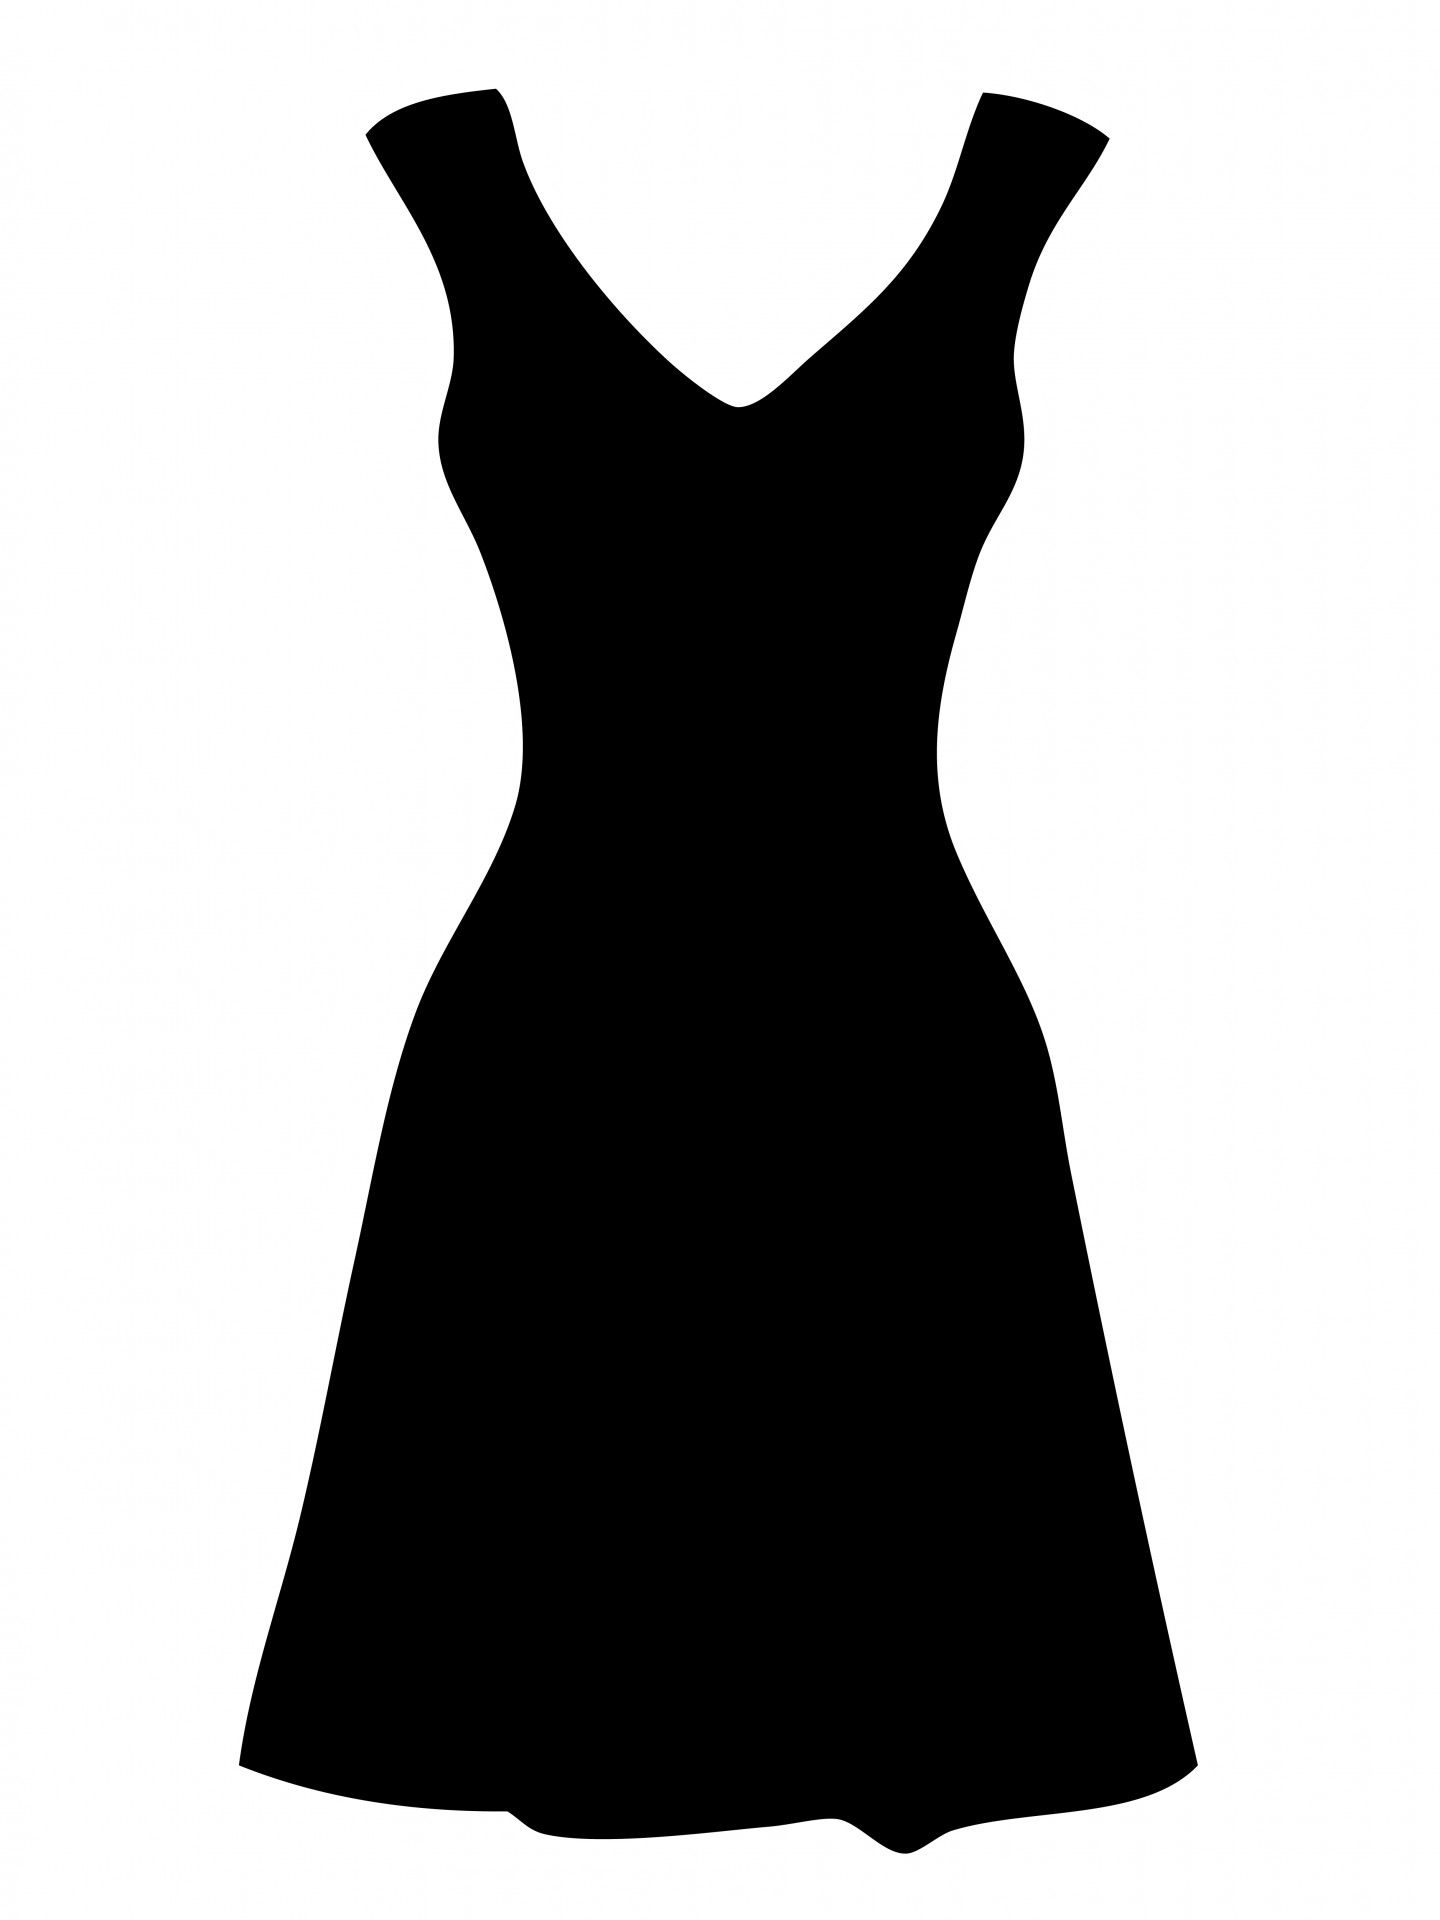 Vestidos clipart transparent library Free Clipart Of Dresses | Black Dress Clipart by Karen Arnold ... transparent library